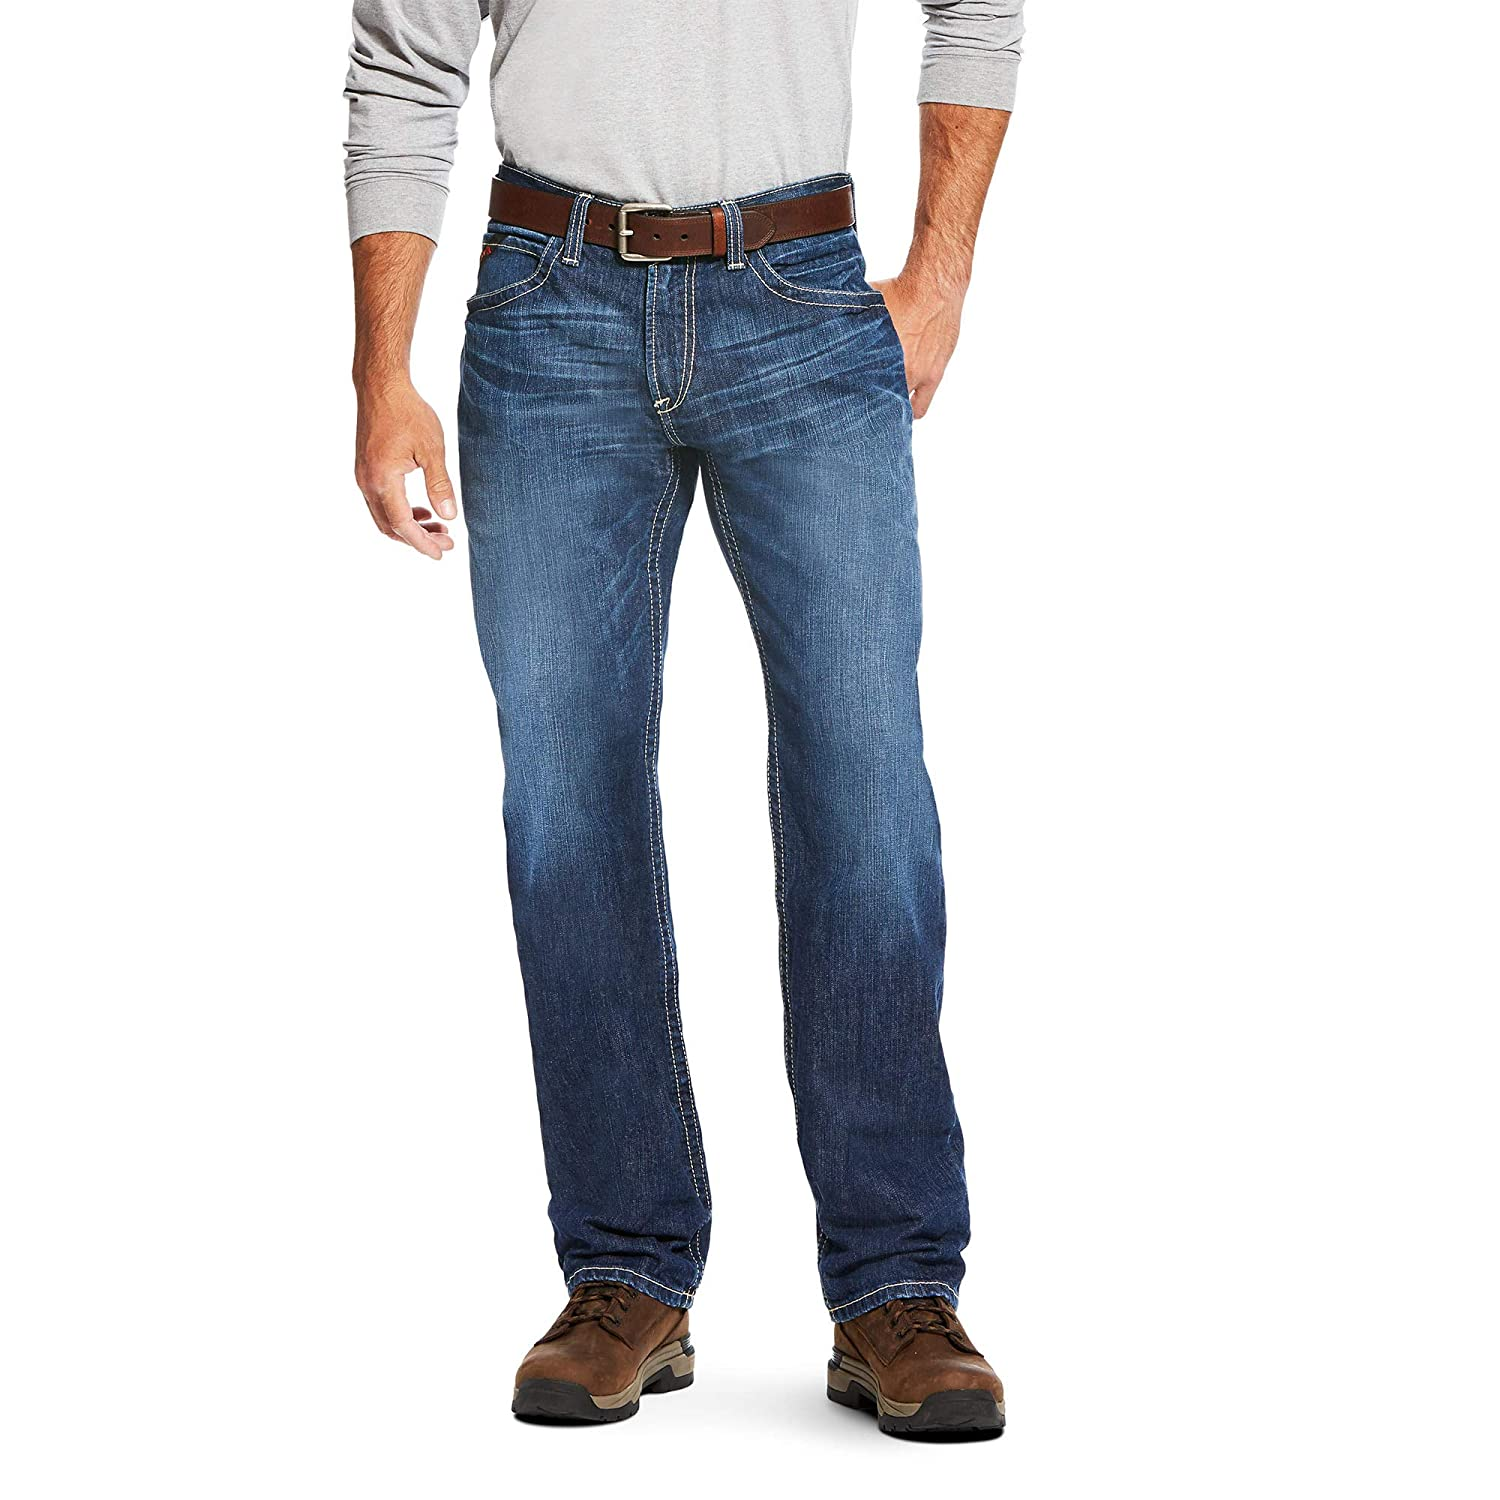 98fd97caeb7 ARIAT Men's Flame Resistant M3 Loose Fit Straight Leg at Amazon Men's  Clothing store: